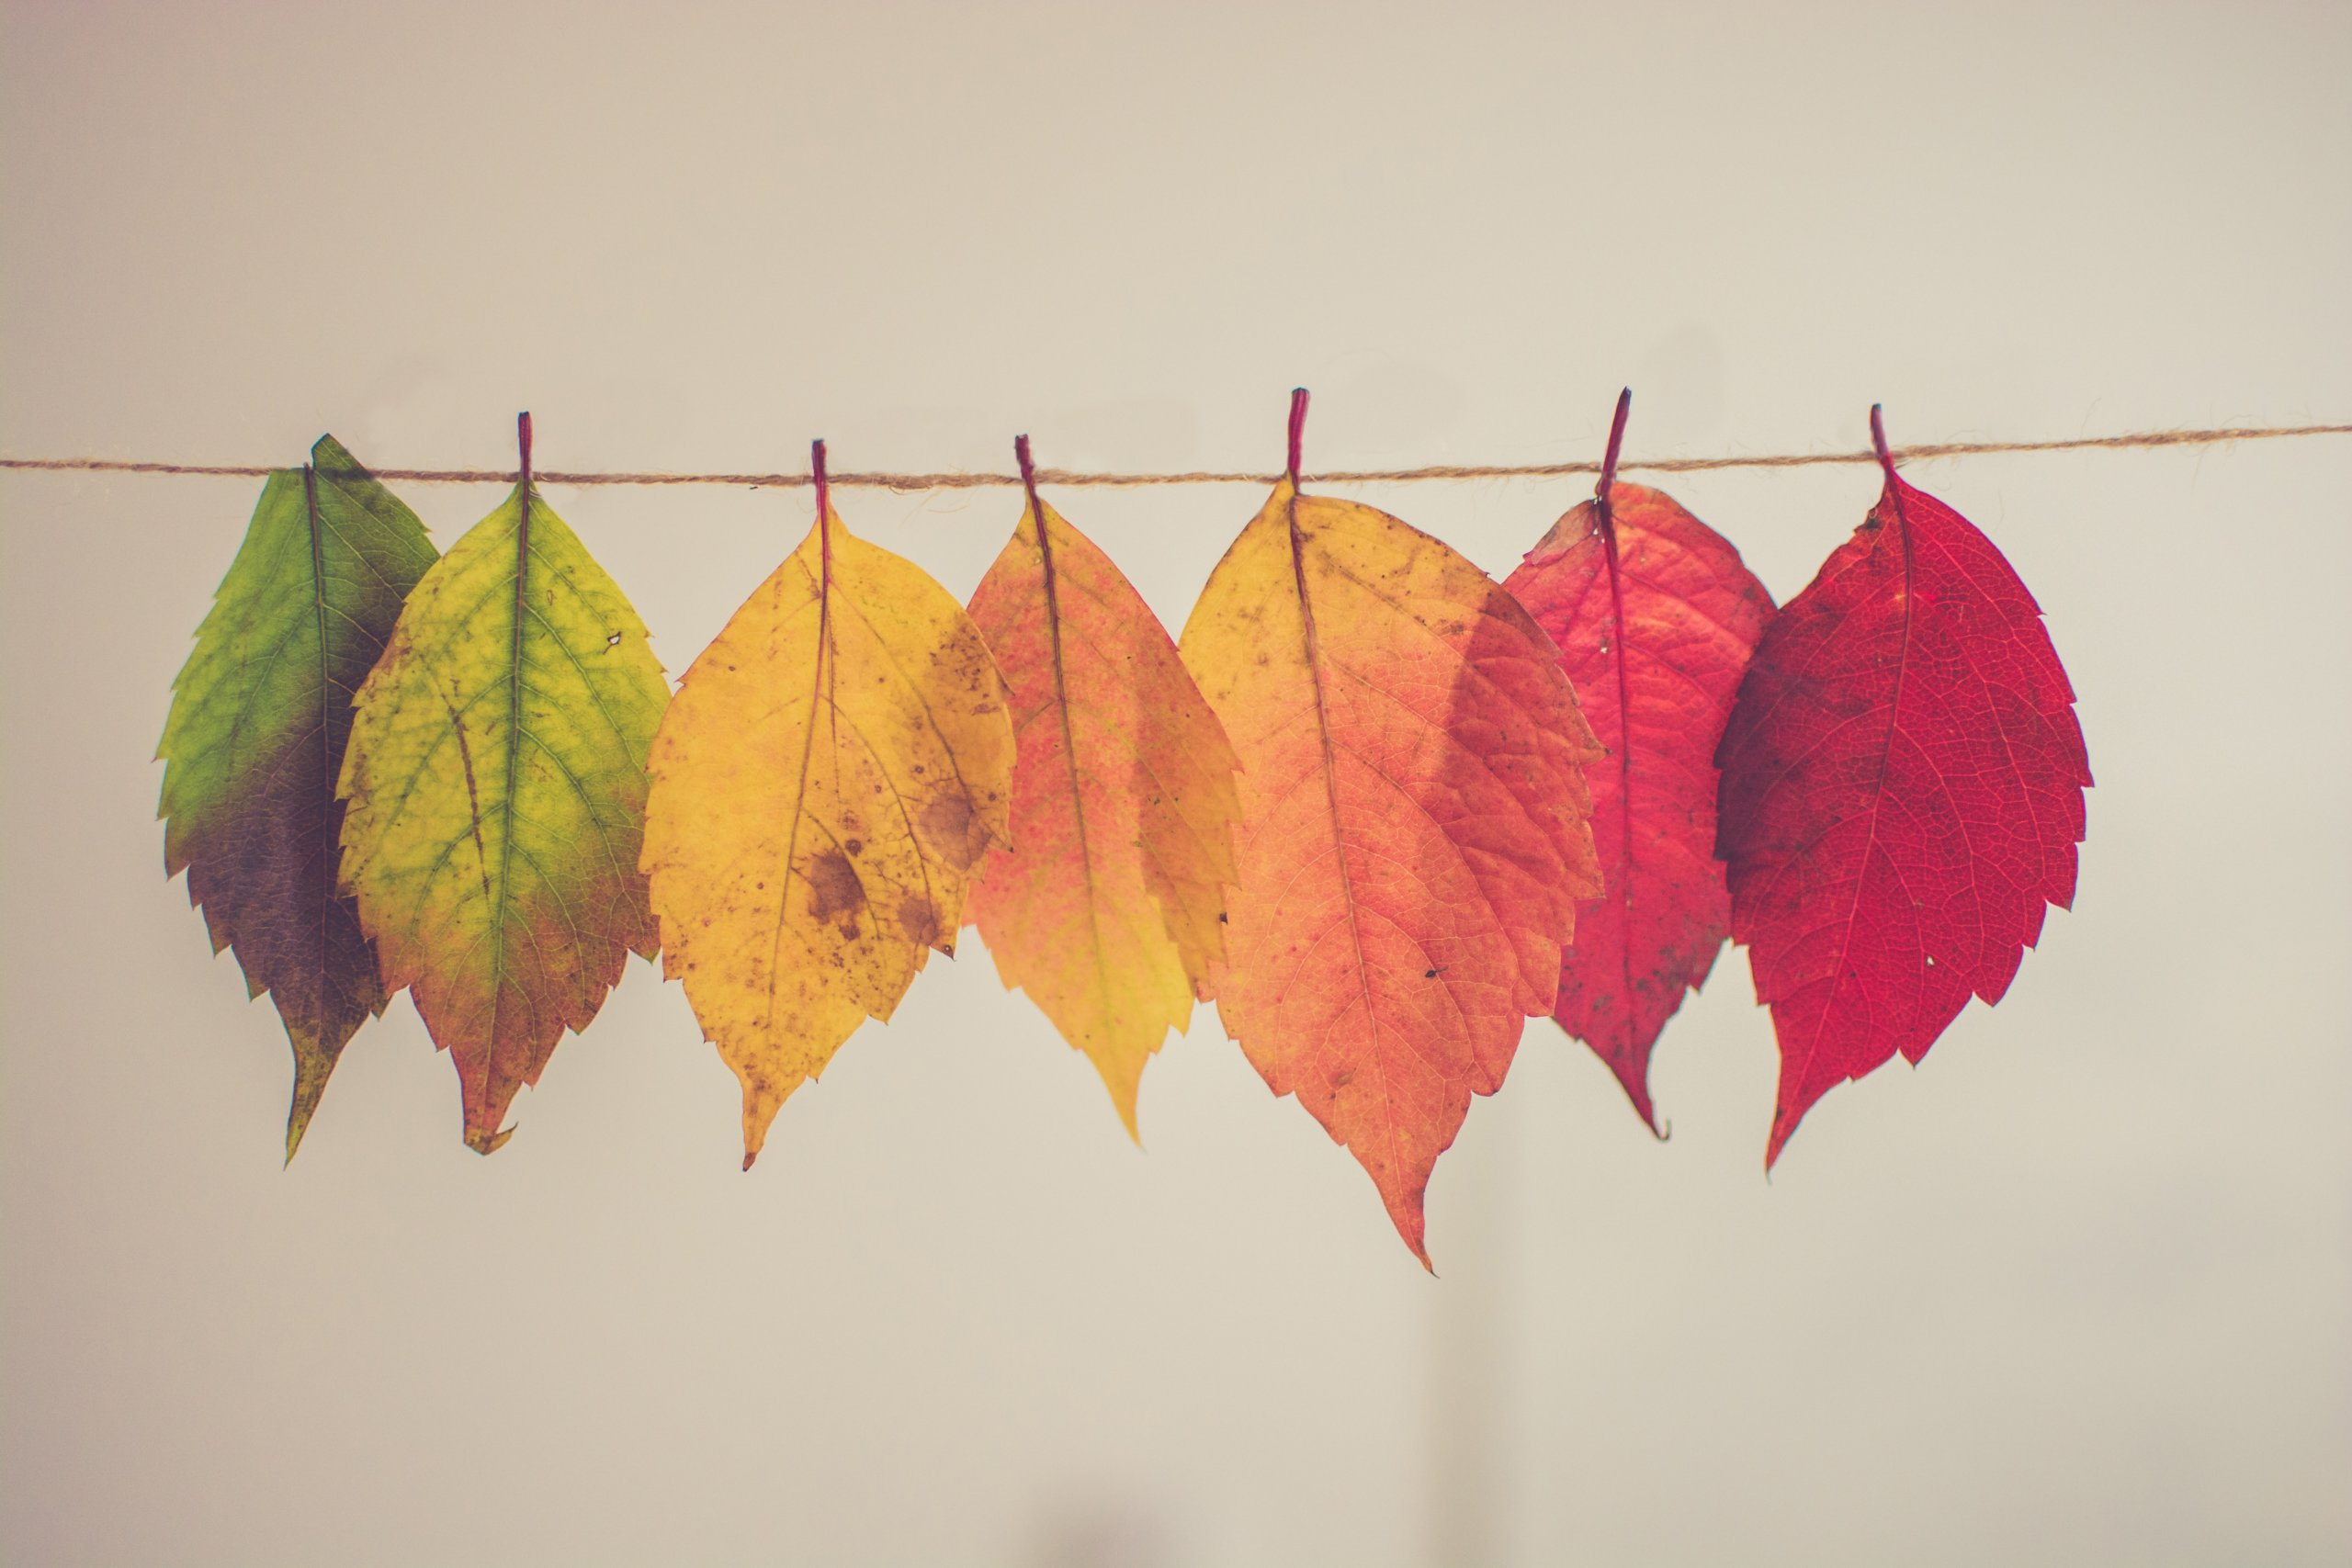 leaves hanging on a twine line fading from green to yellow to red.